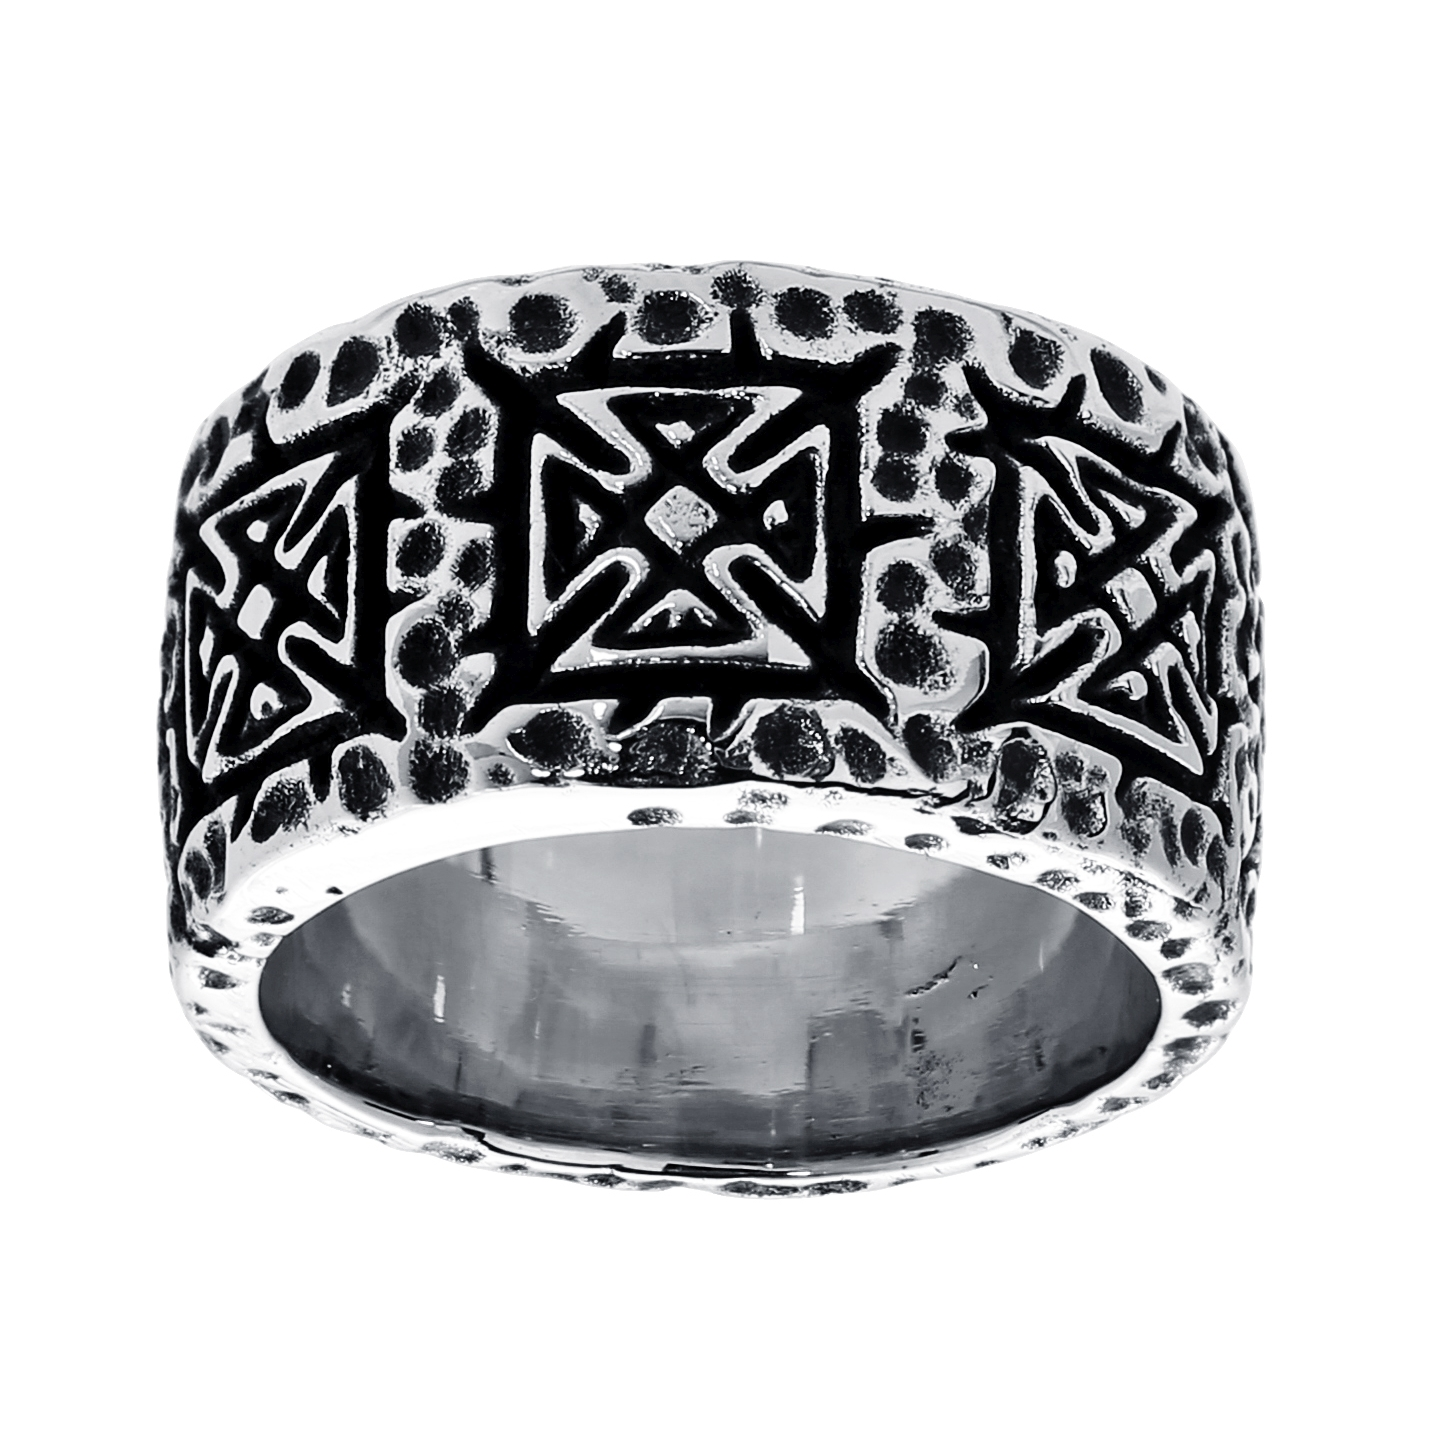 Stainless Steel Ring with Black Plating